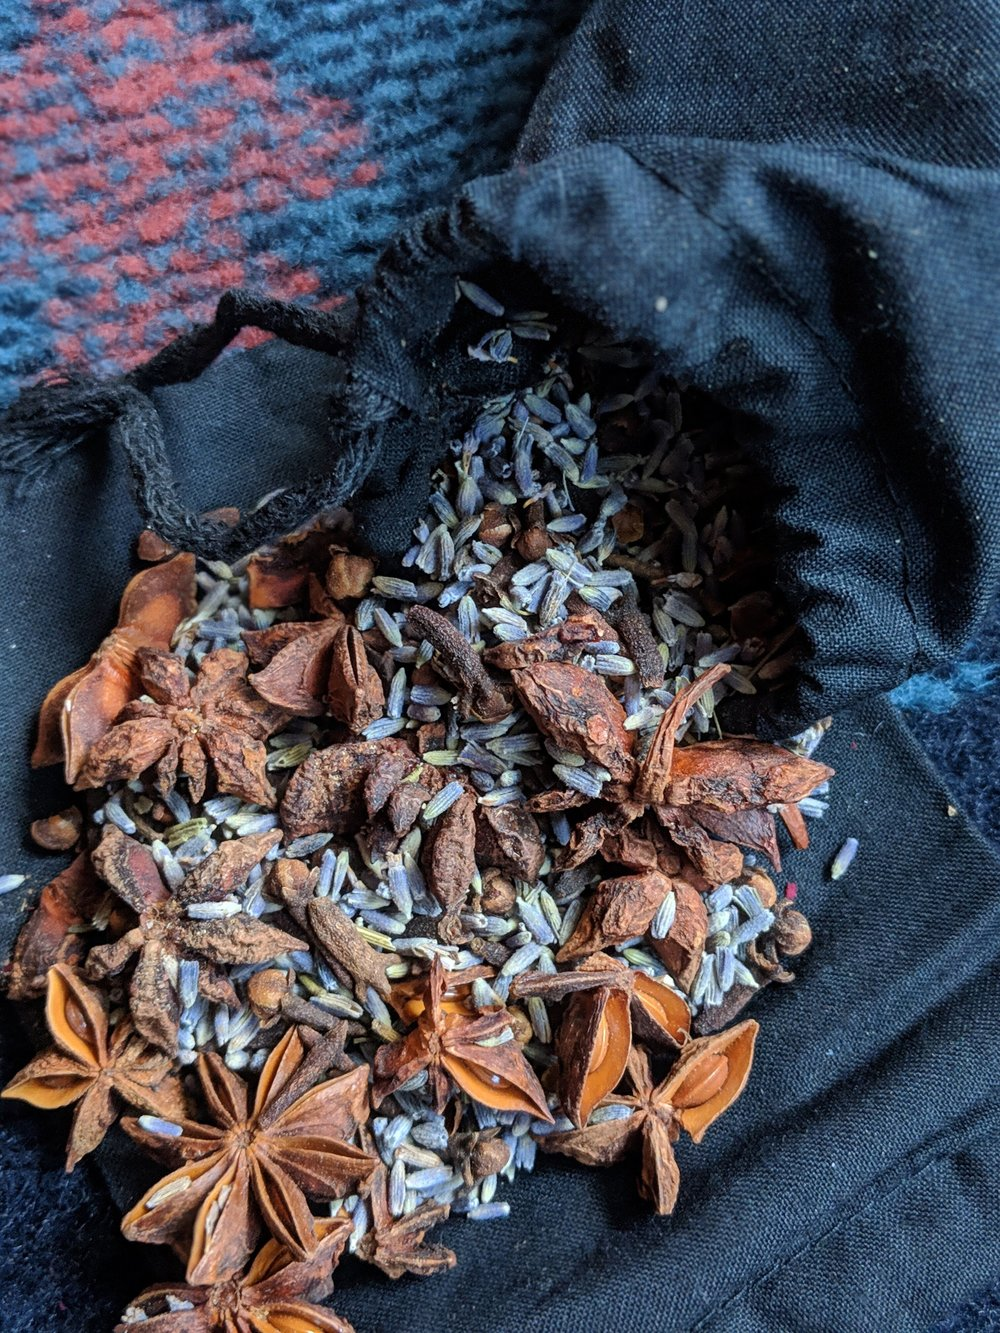 Ignite the senses with these floral sachets. Filled with lavender, clove, and star anise, this romantic blend of smells is the manifestation of warmth and adoration. Coupled with Palo Santo incense sticks, this bundle will be sure to bring in ta happy mood.